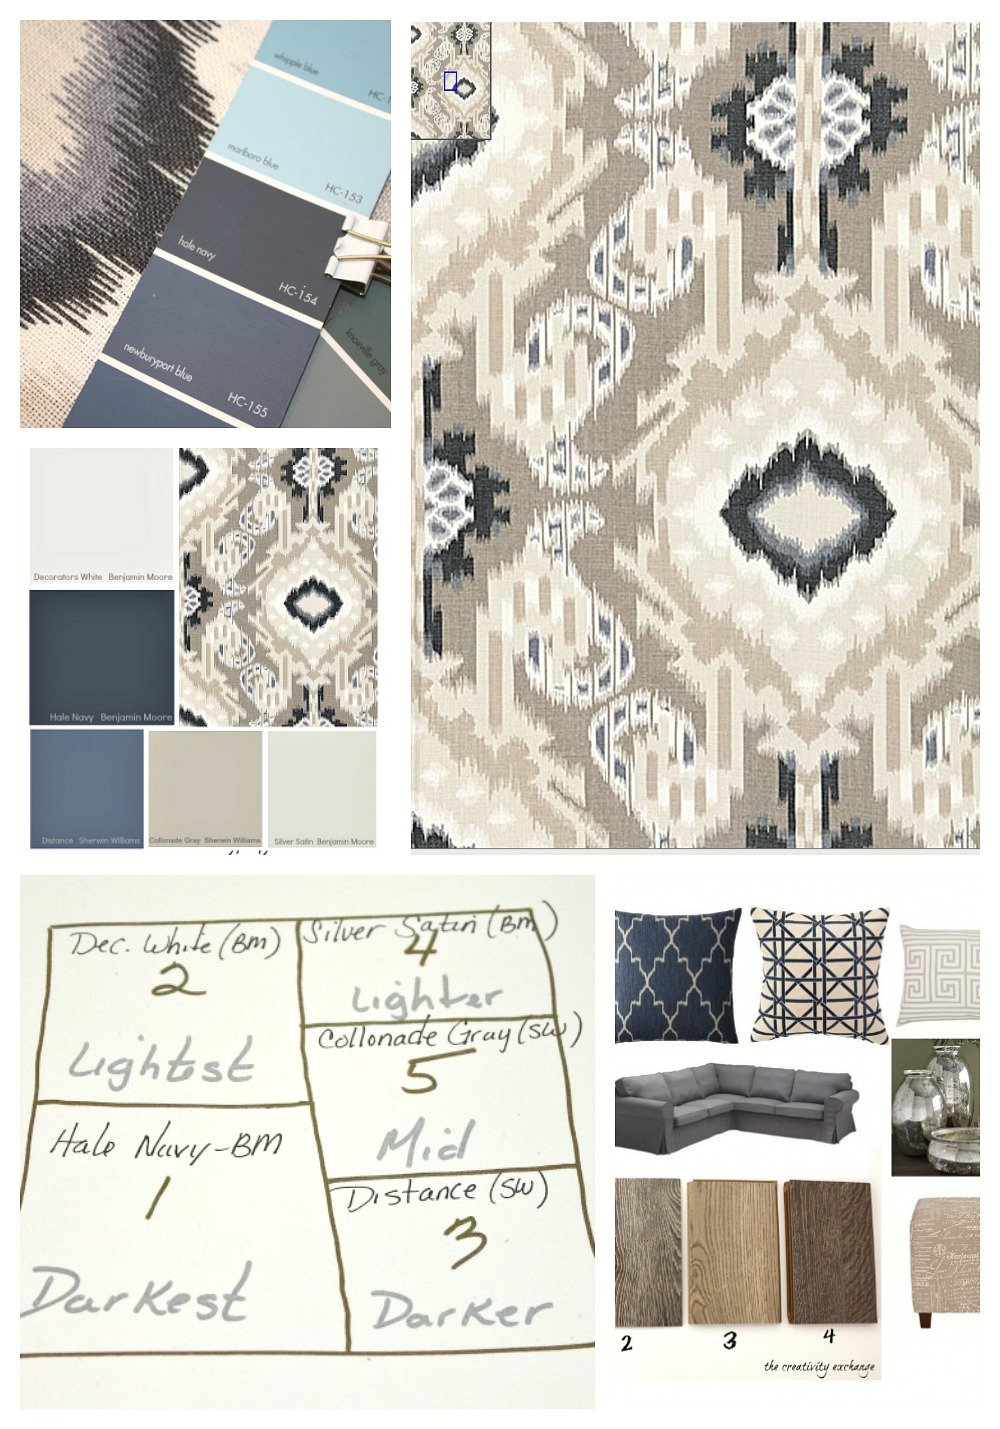 Choosing a room color scheme with fabric.